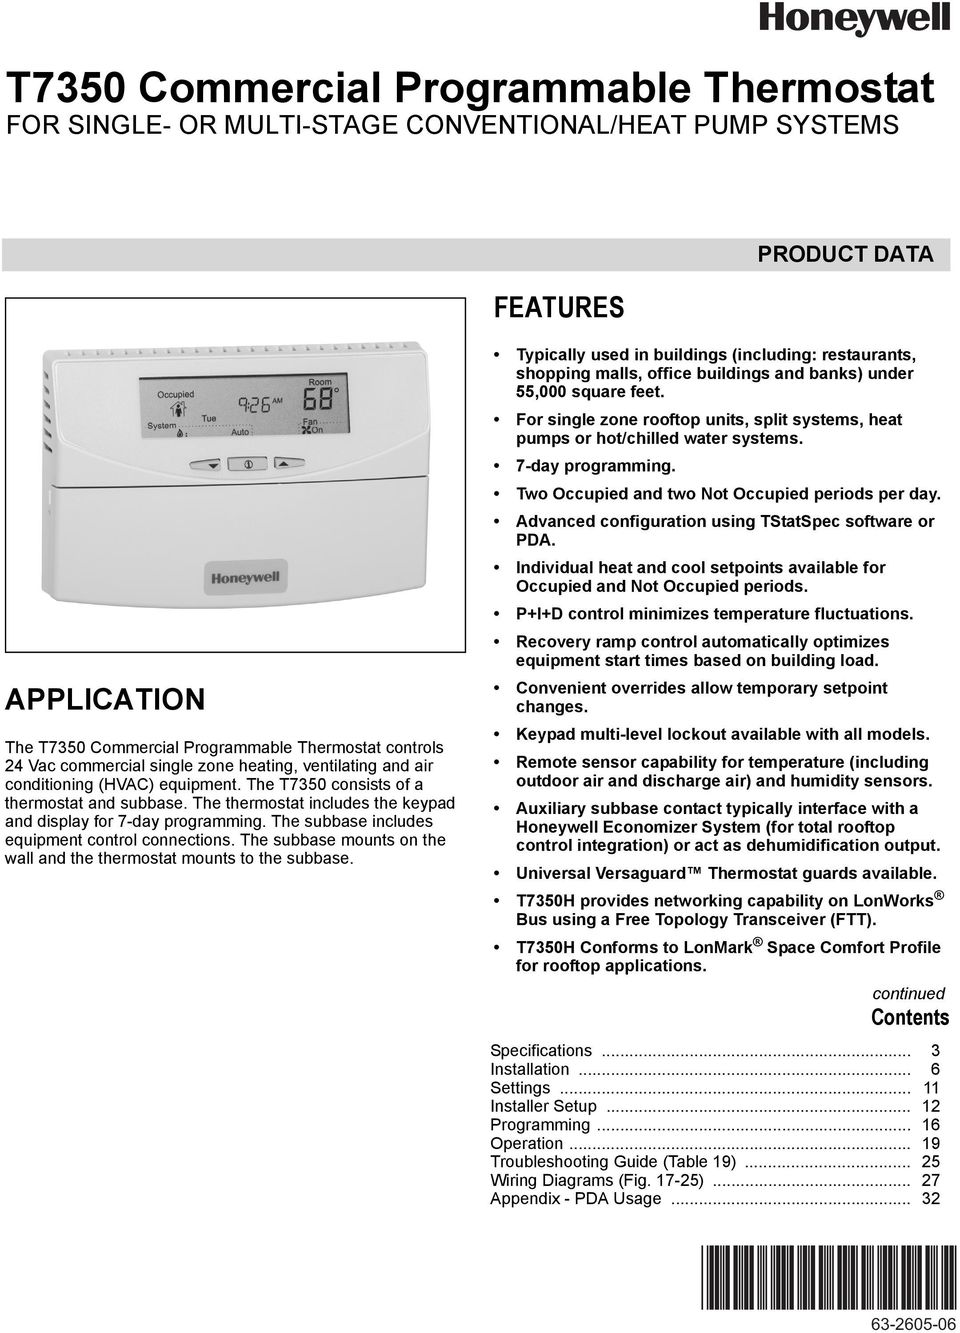 Honeywell T7350 Wiring Diagram Block And Schematic Diagrams Heat Pump Thermostat Manual Commercial Programmable For Single Or Multi Stage Rh Docplayer Net Control